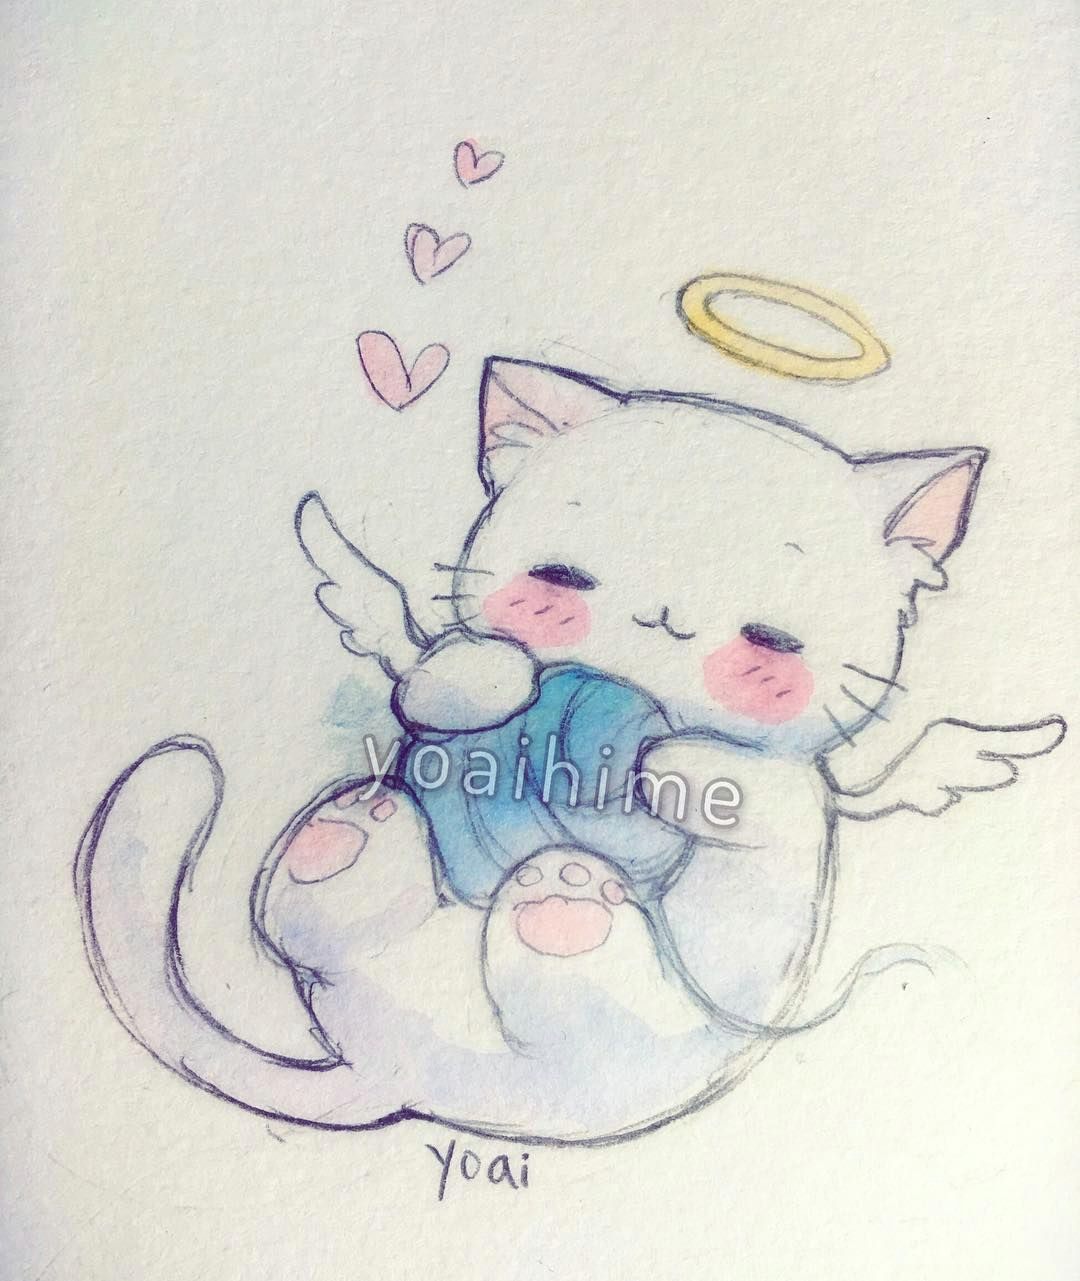 on my way to the grocery store i saw a white cat that had died this is in memory of the kitty poor little guy at least the kitty is in a